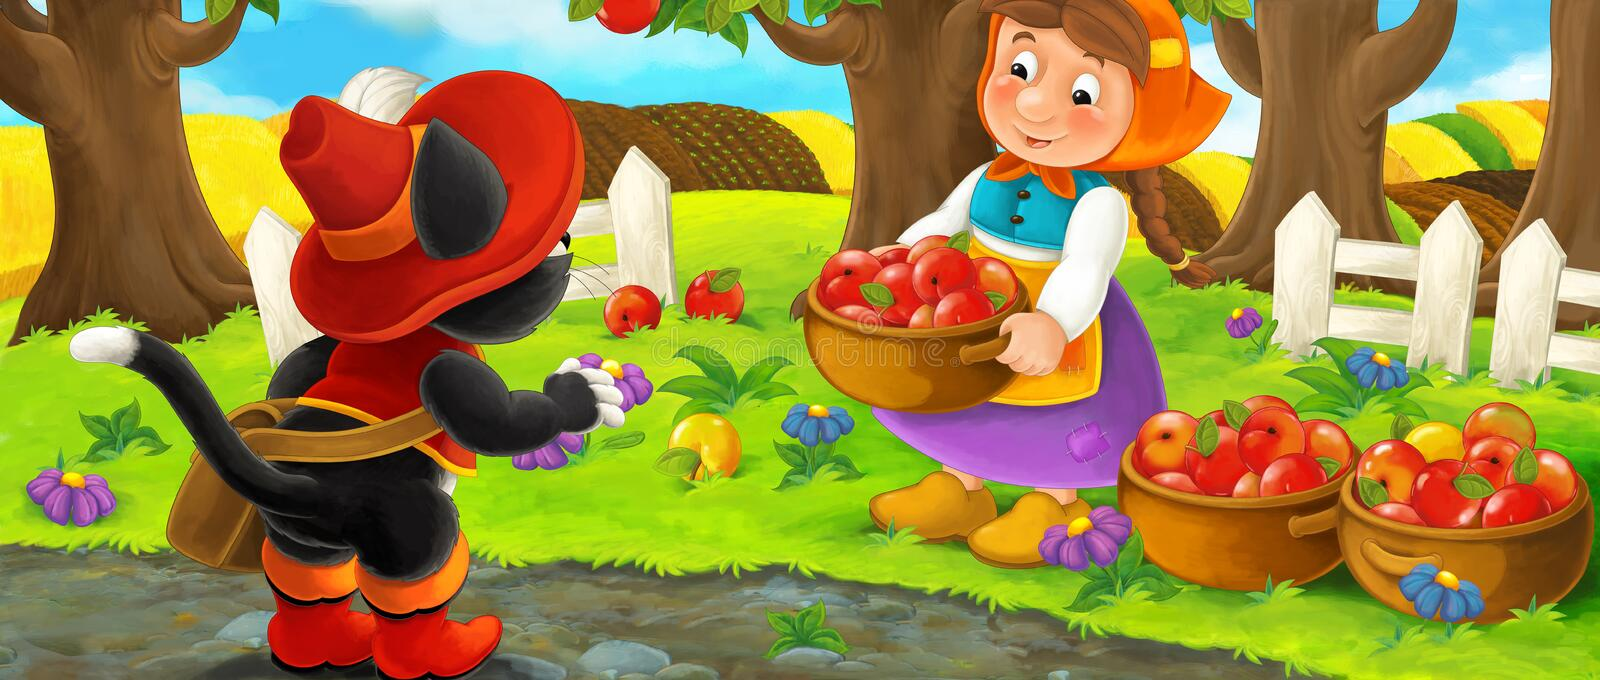 Cartoon scene with noble cat traveler visiting farm woman in garden during beautiful day stock illustration